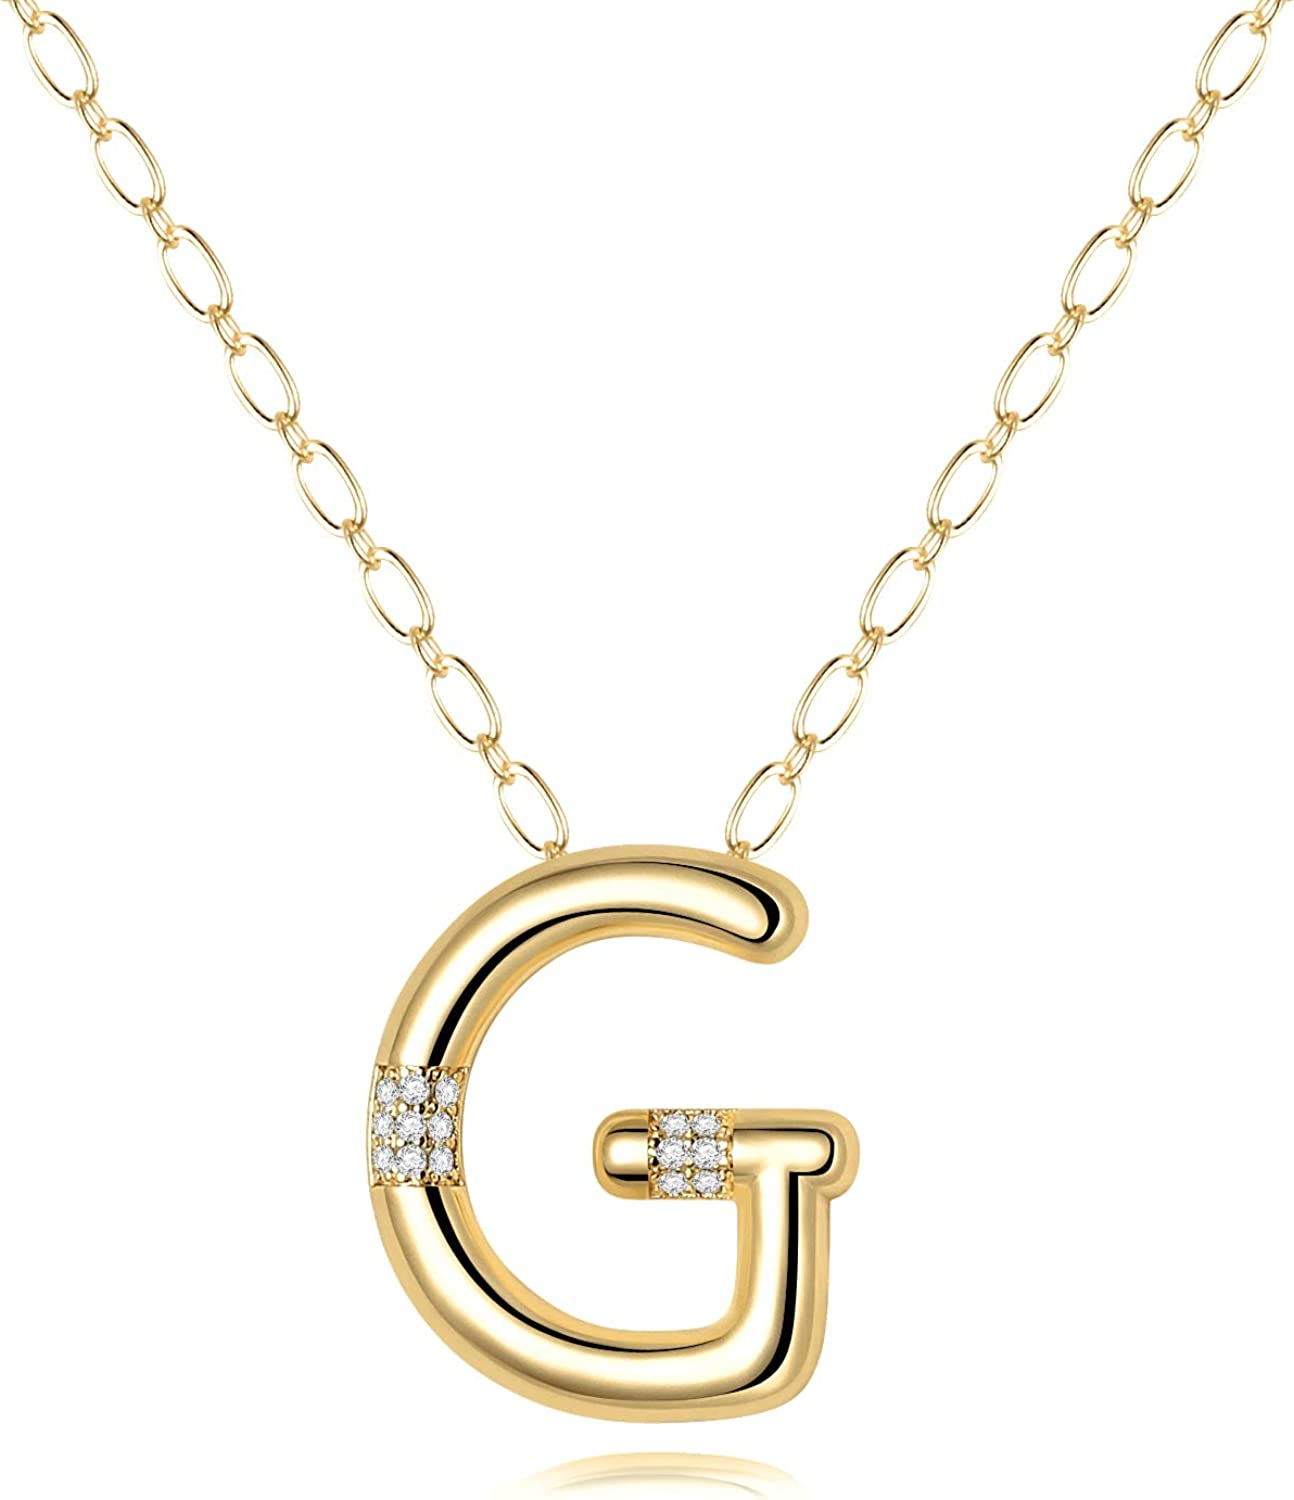 Personalized  Necklace 2 inch,Silver Custom Monogram Necklace,3 Initials Charm Necklace,Nameplate Pendant,Large Monogram,Bridesmaids Gifts